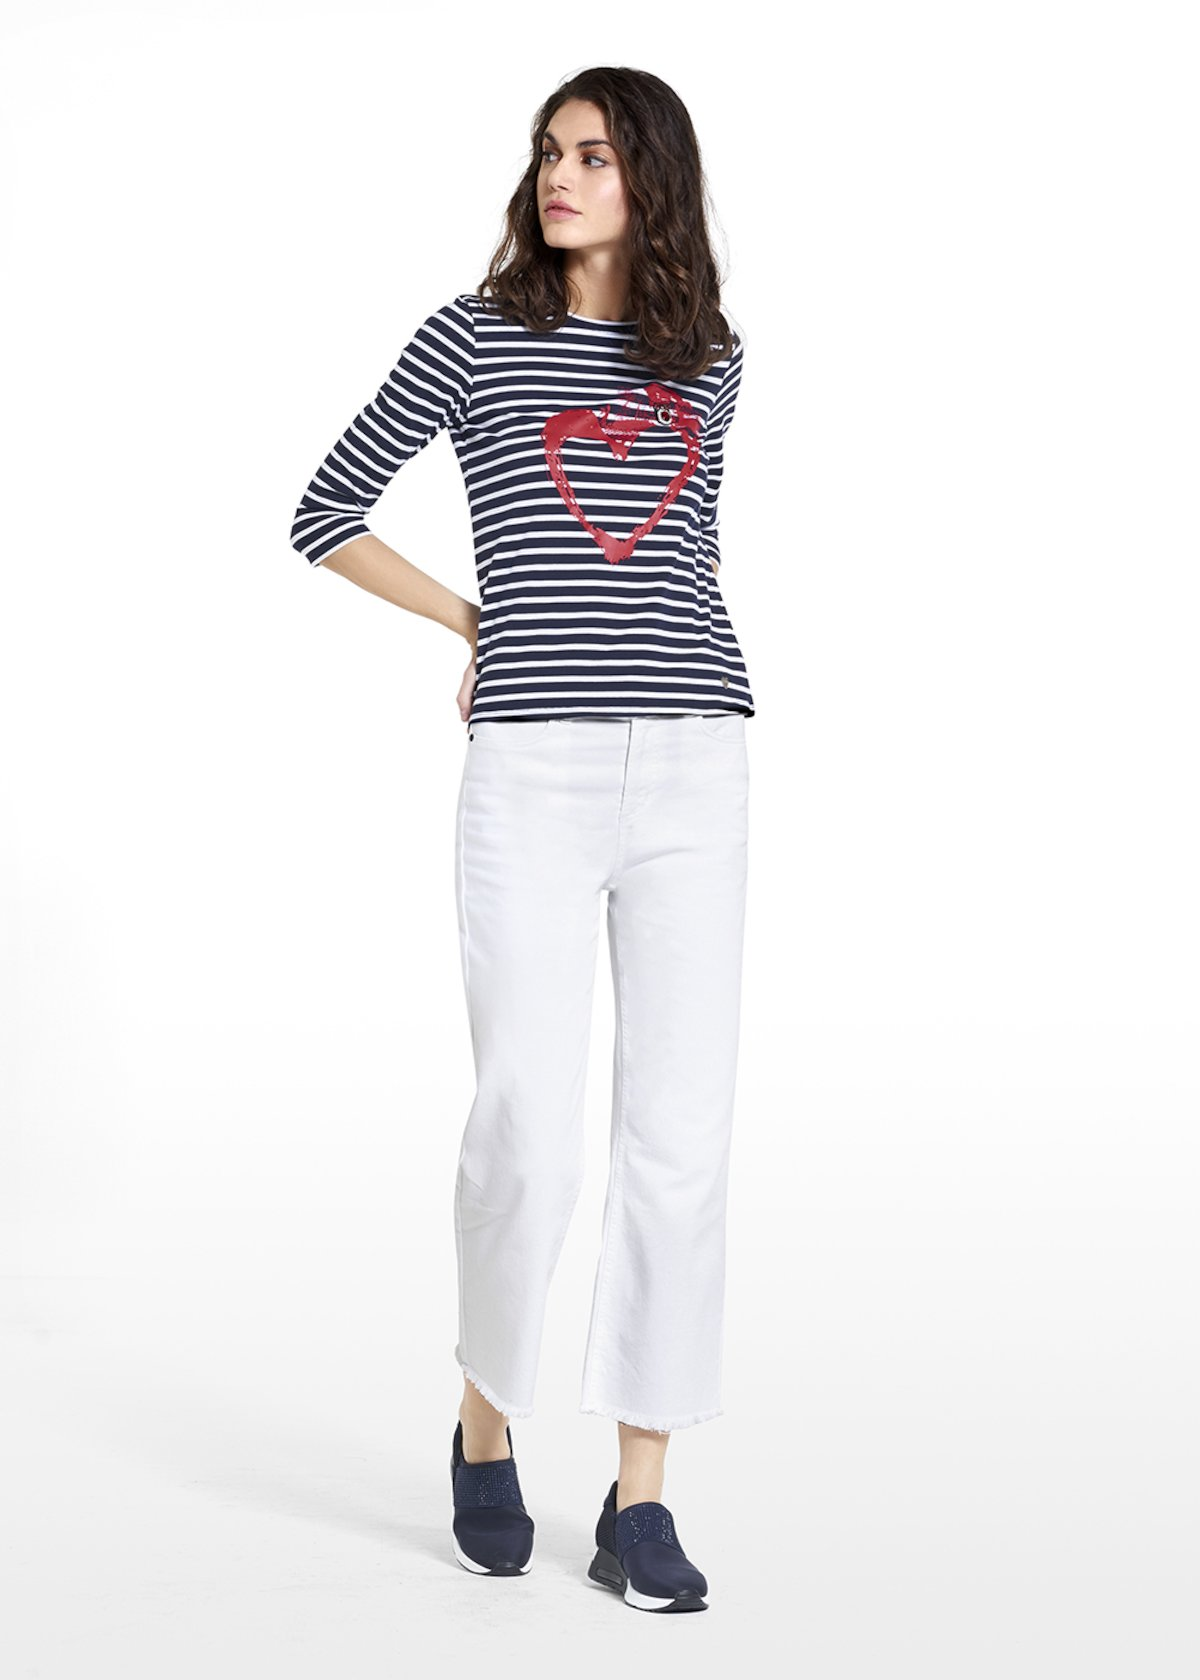 Fringeless at the bottom straight leg pants Pilot - White - Woman - Category image